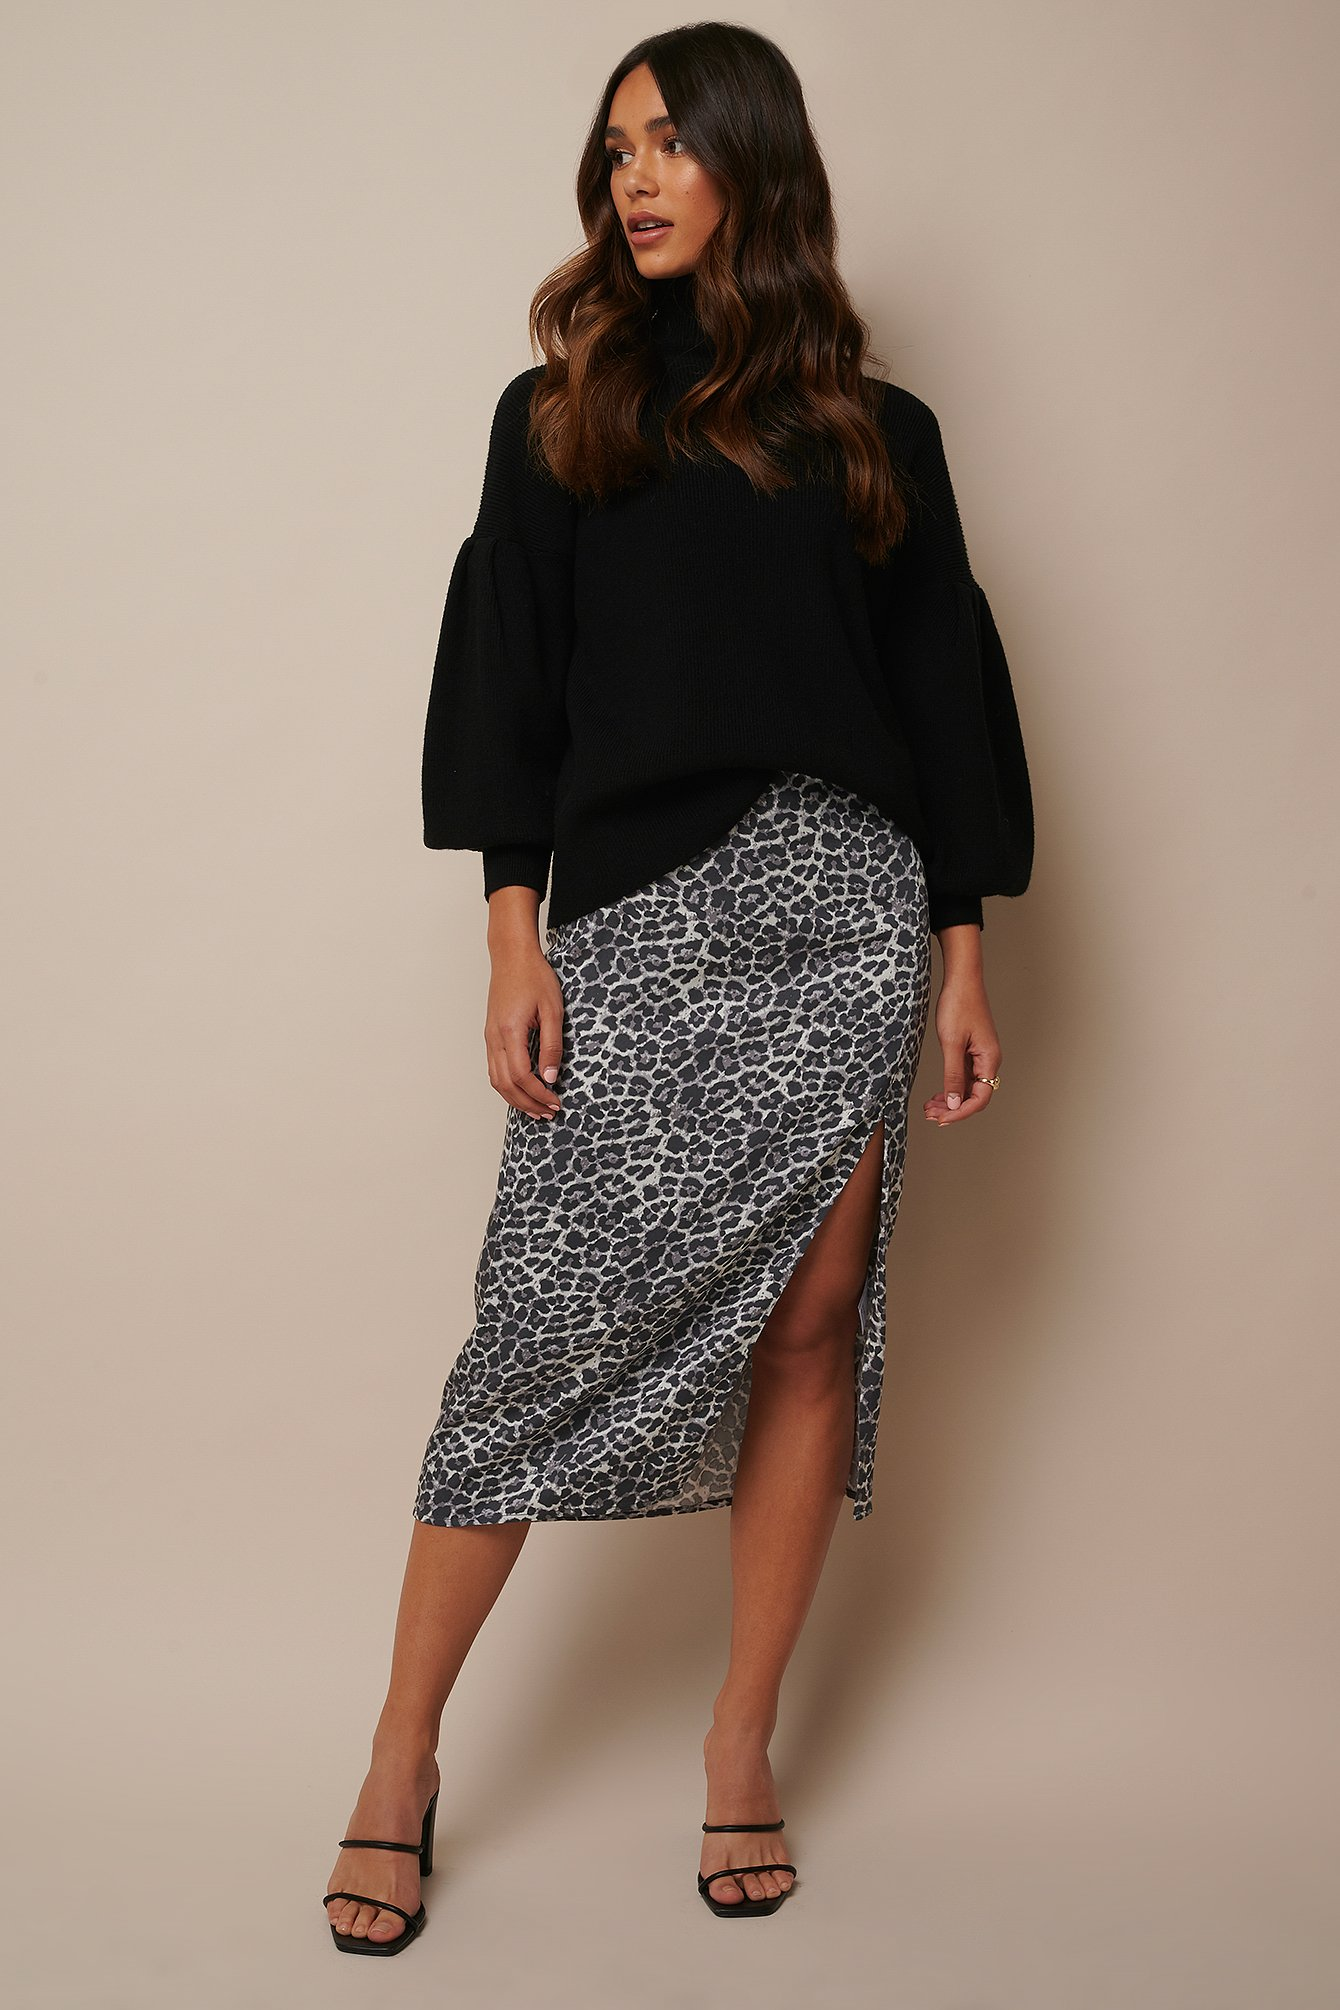 Leoprint Leo Printed Midi Skirt